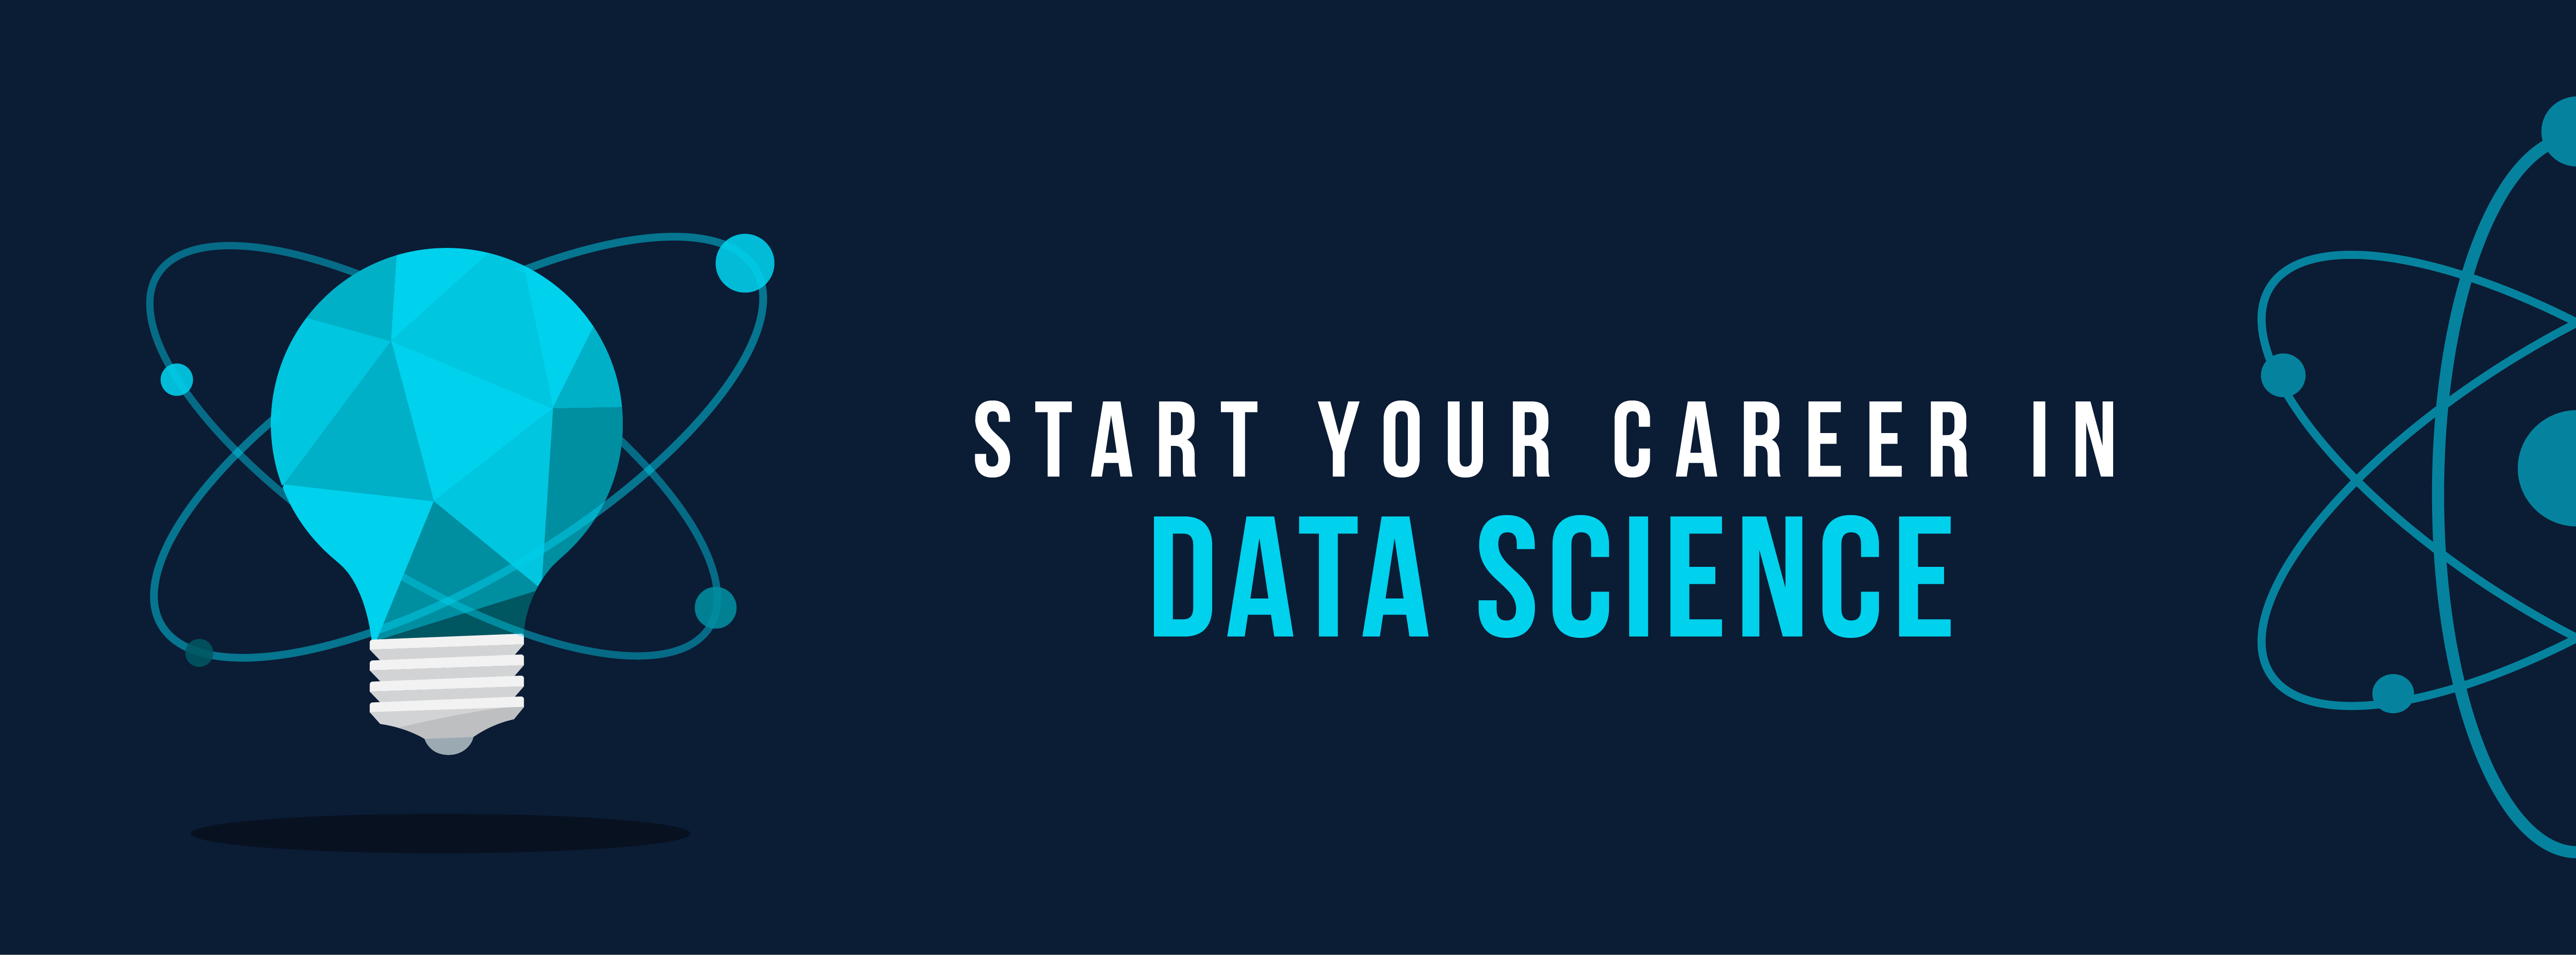 Start your career in data science